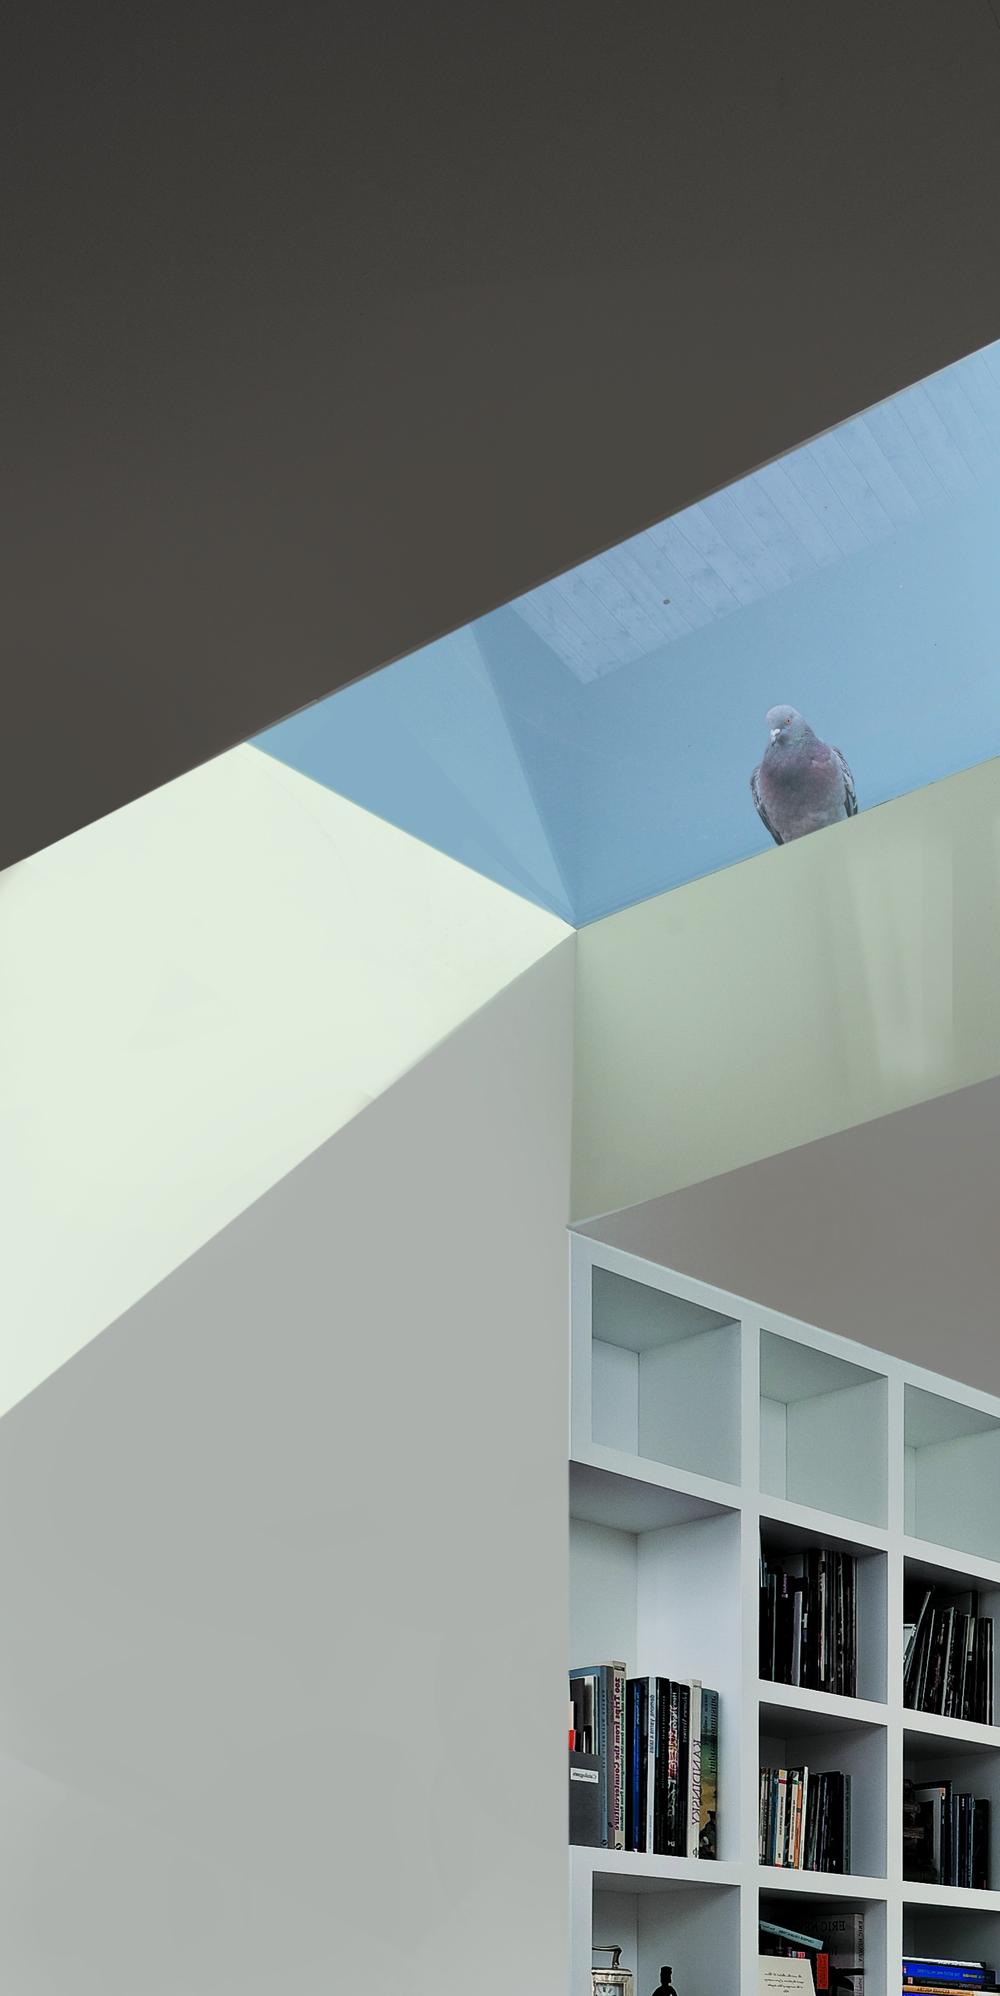 WTAD_rooflight with pigeon.jpg